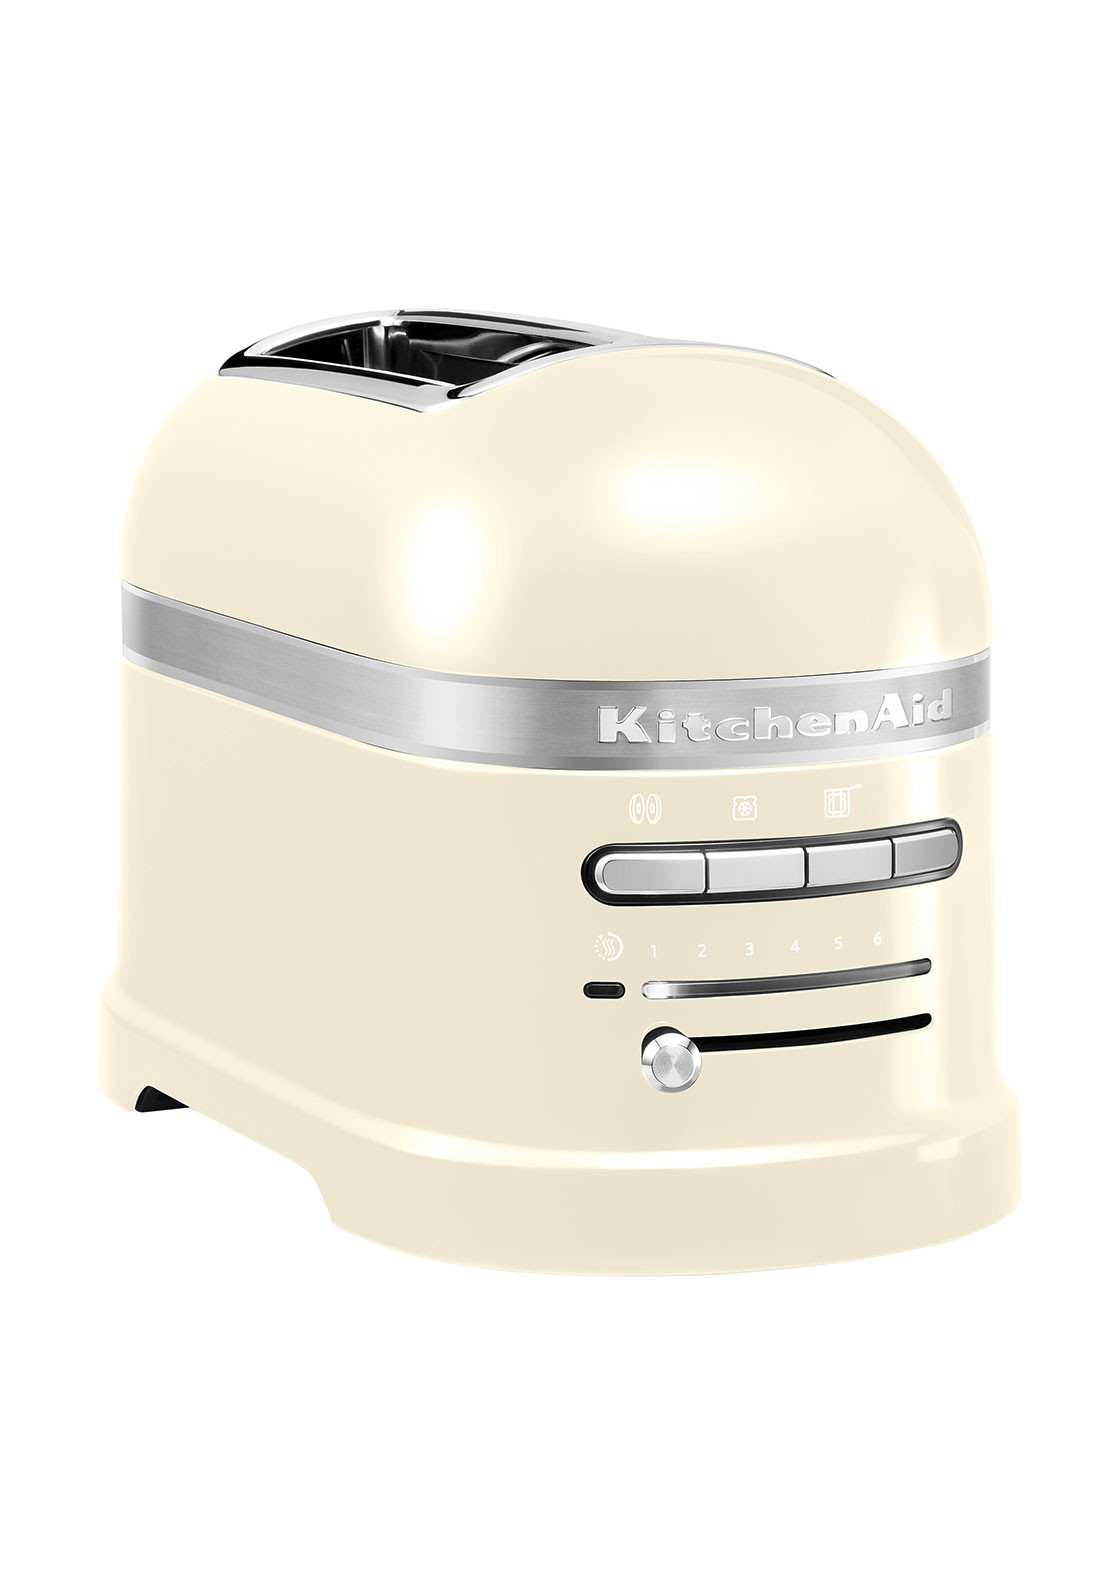 KitchenAid Artisan 2 Slice Toaster, Almond Cream